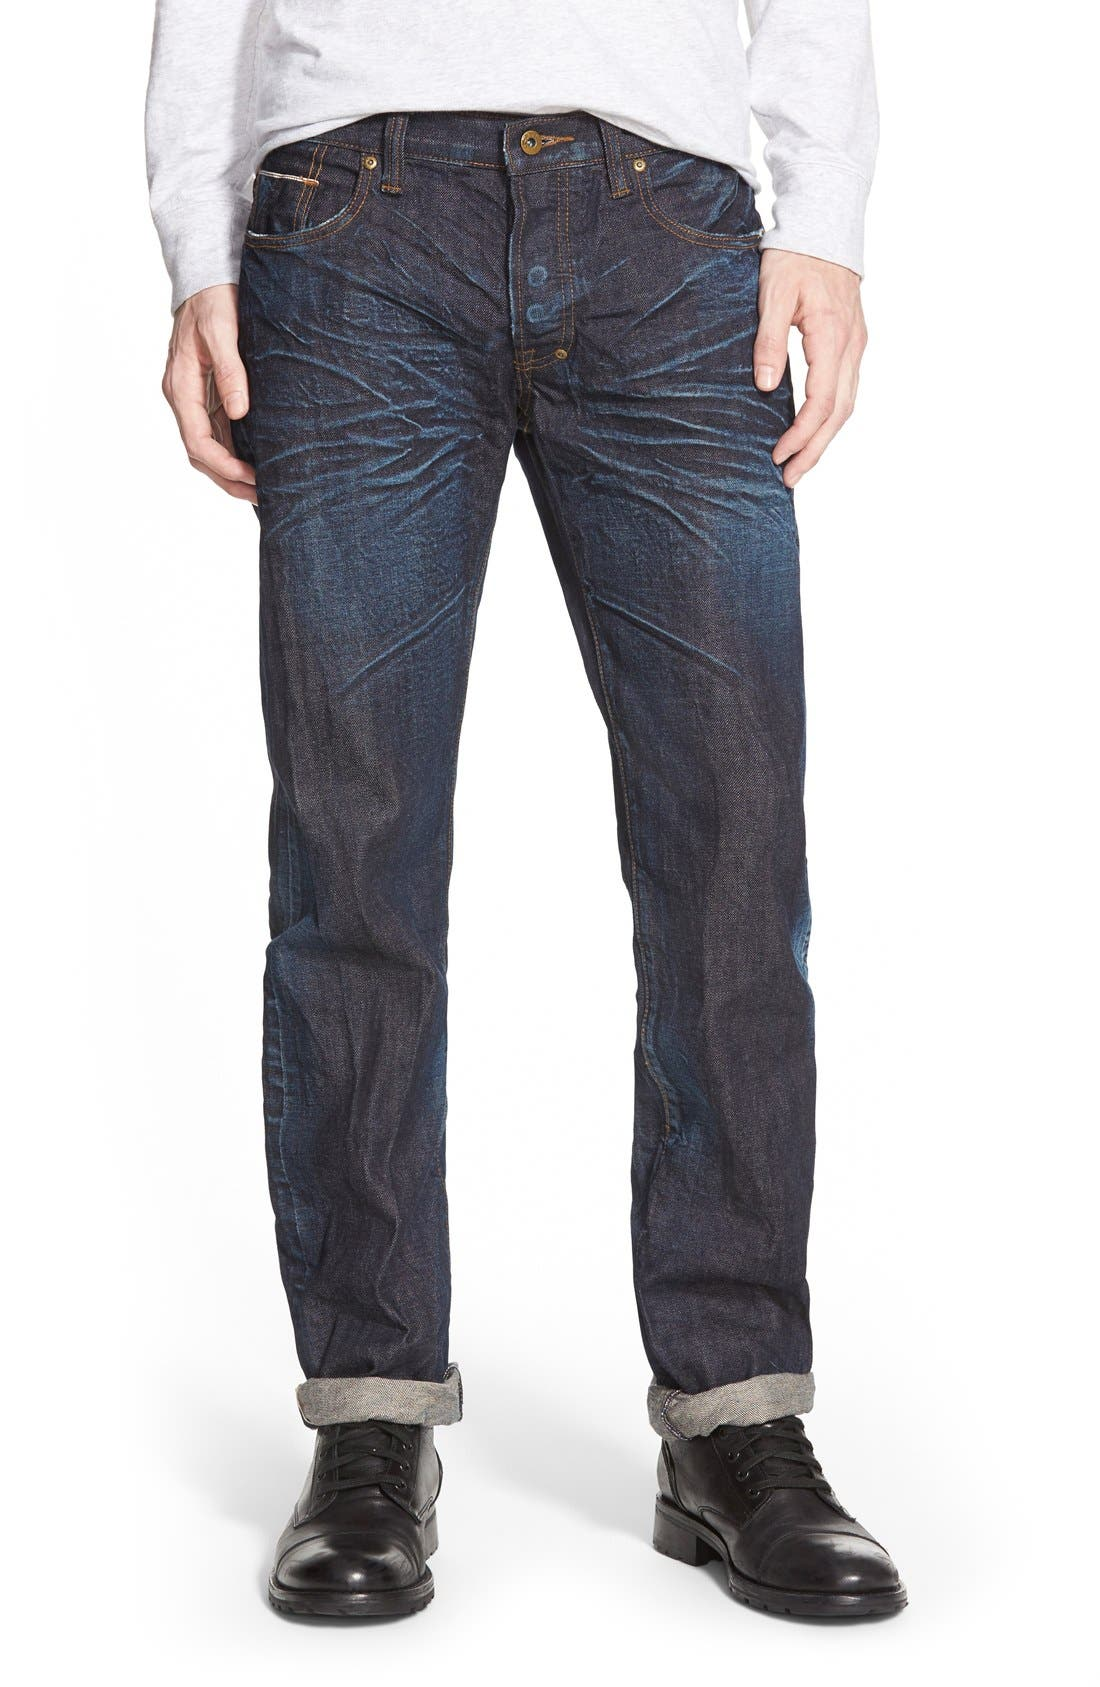 PRPS 'Barracuda' Straight Leg Selvedge Jeans (6 Month Wash)